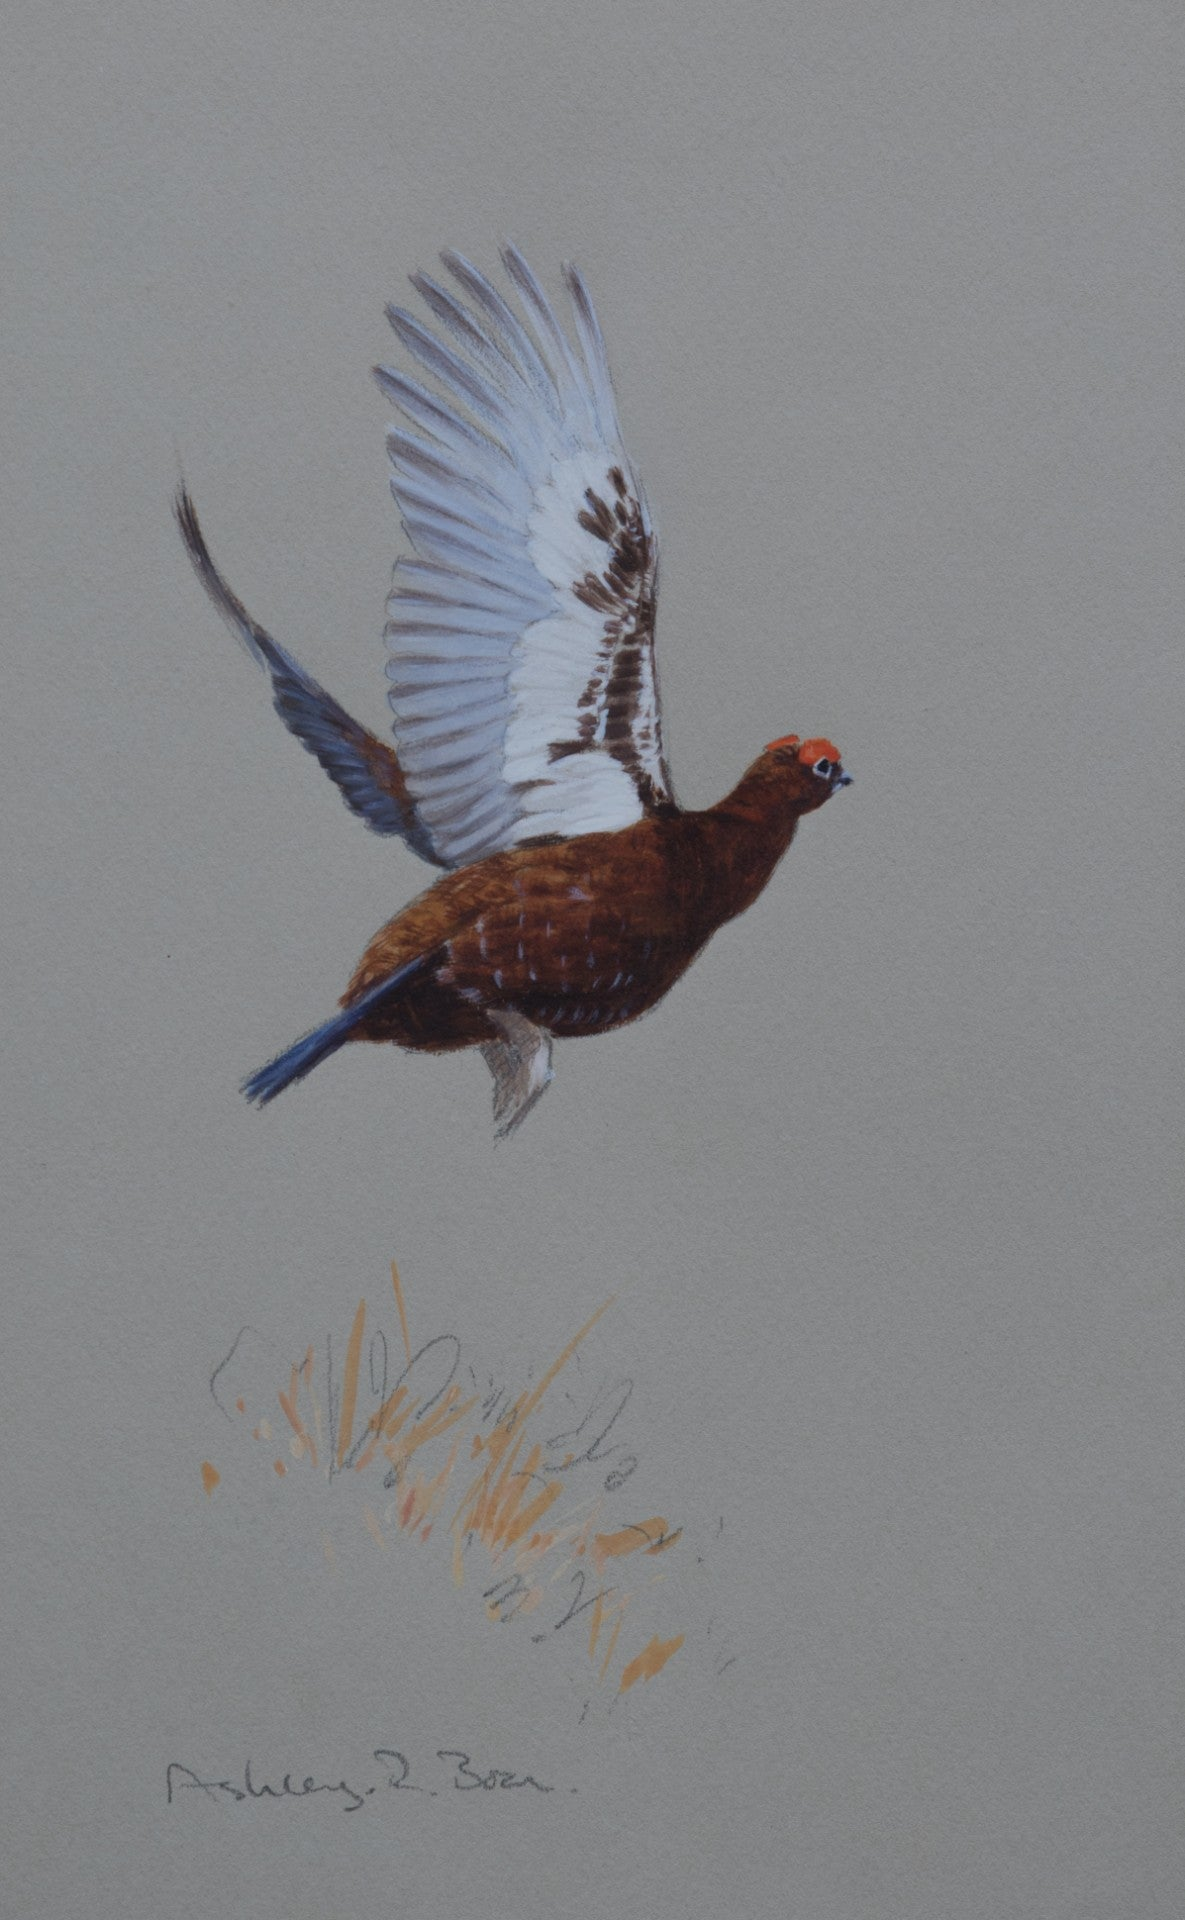 "'Lifting Grouse' Original watercolour by Ashley Boon - 9.75"" x 6.25"""